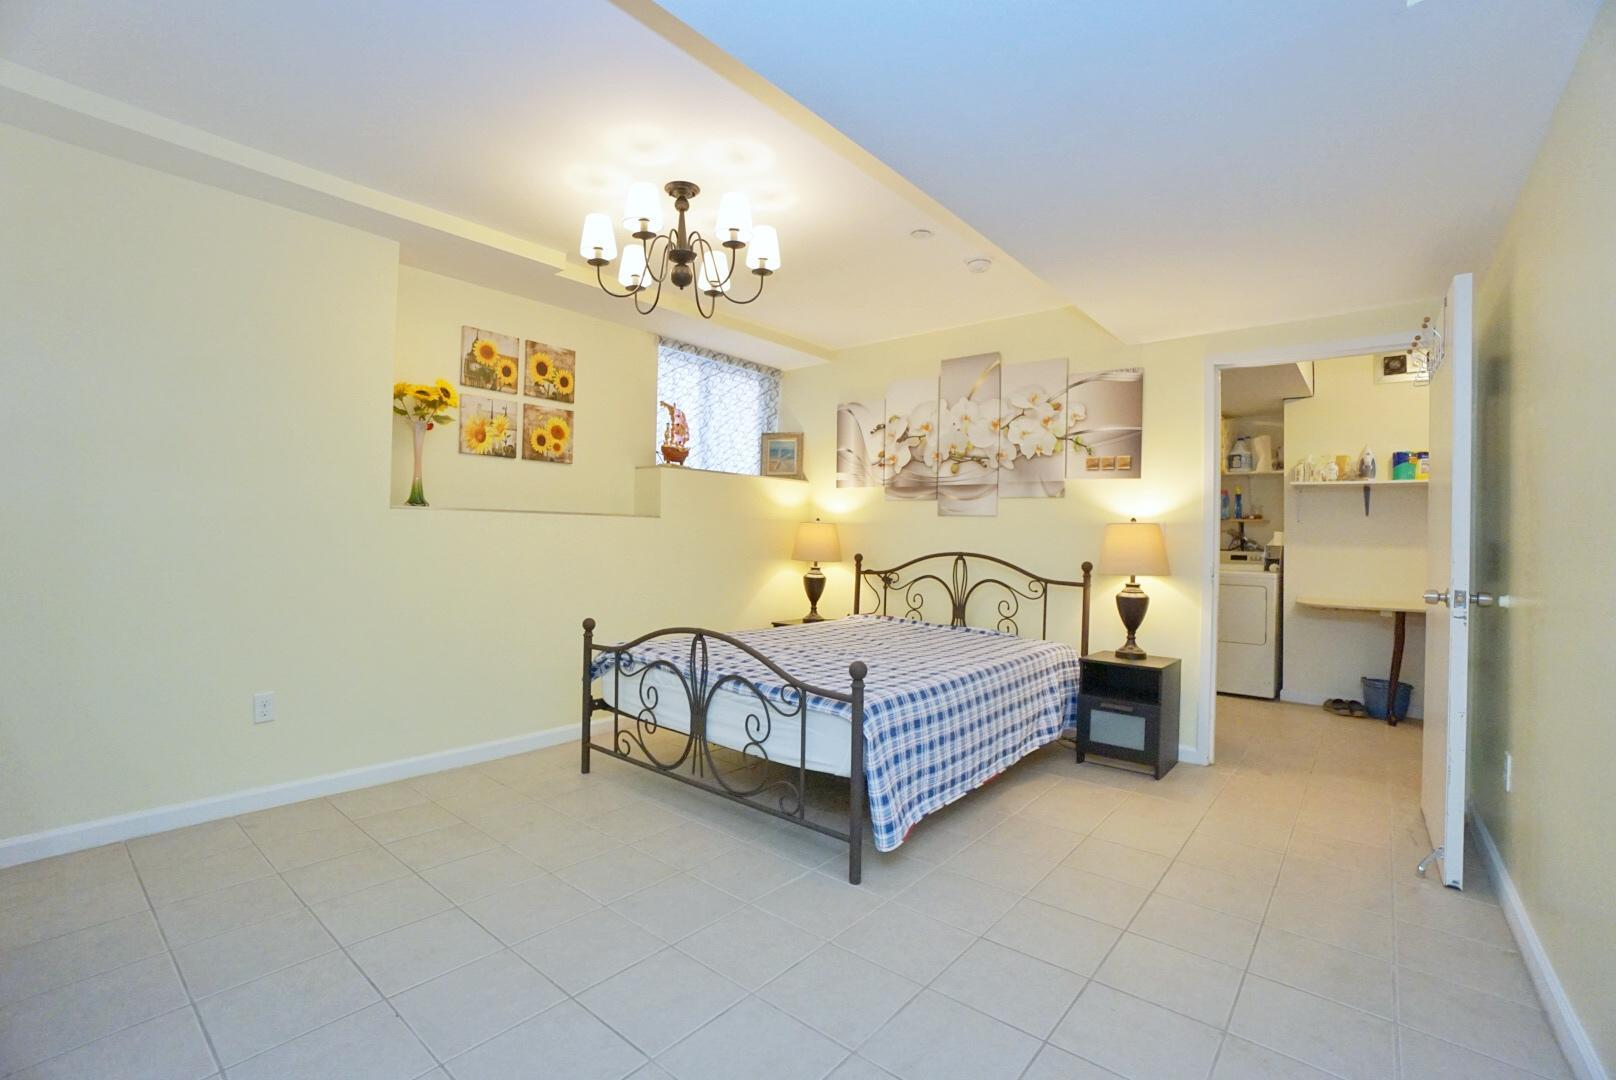 Single Family - Detached 171 Benziger Avenue  Staten Island, NY 10301, MLS-1145235-33